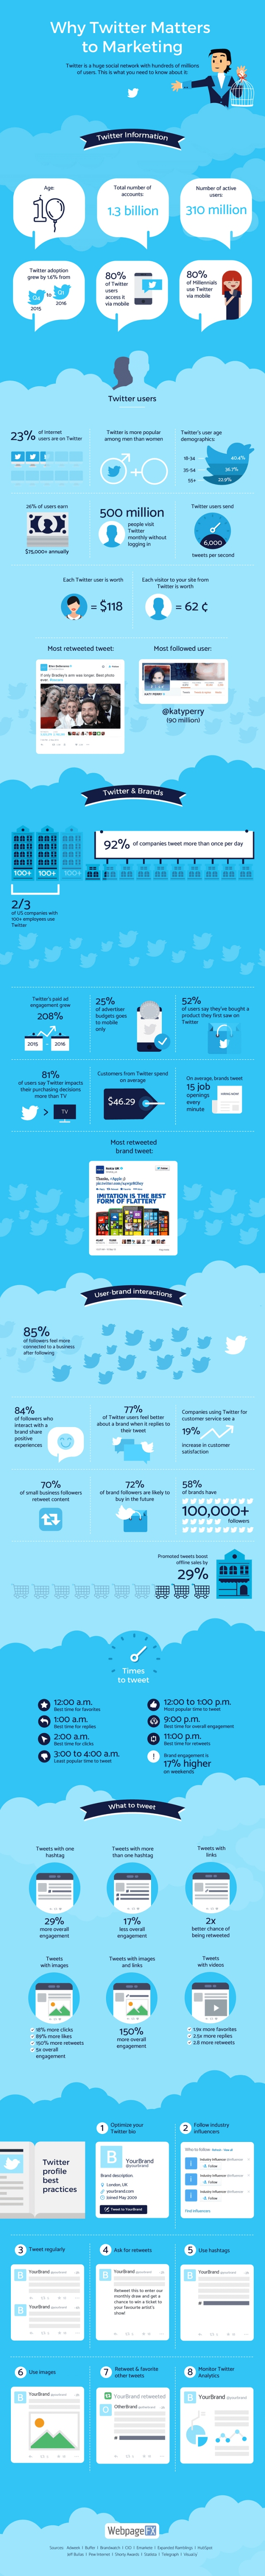 twitter-marketing-for-business-why-how-you-should-use-it